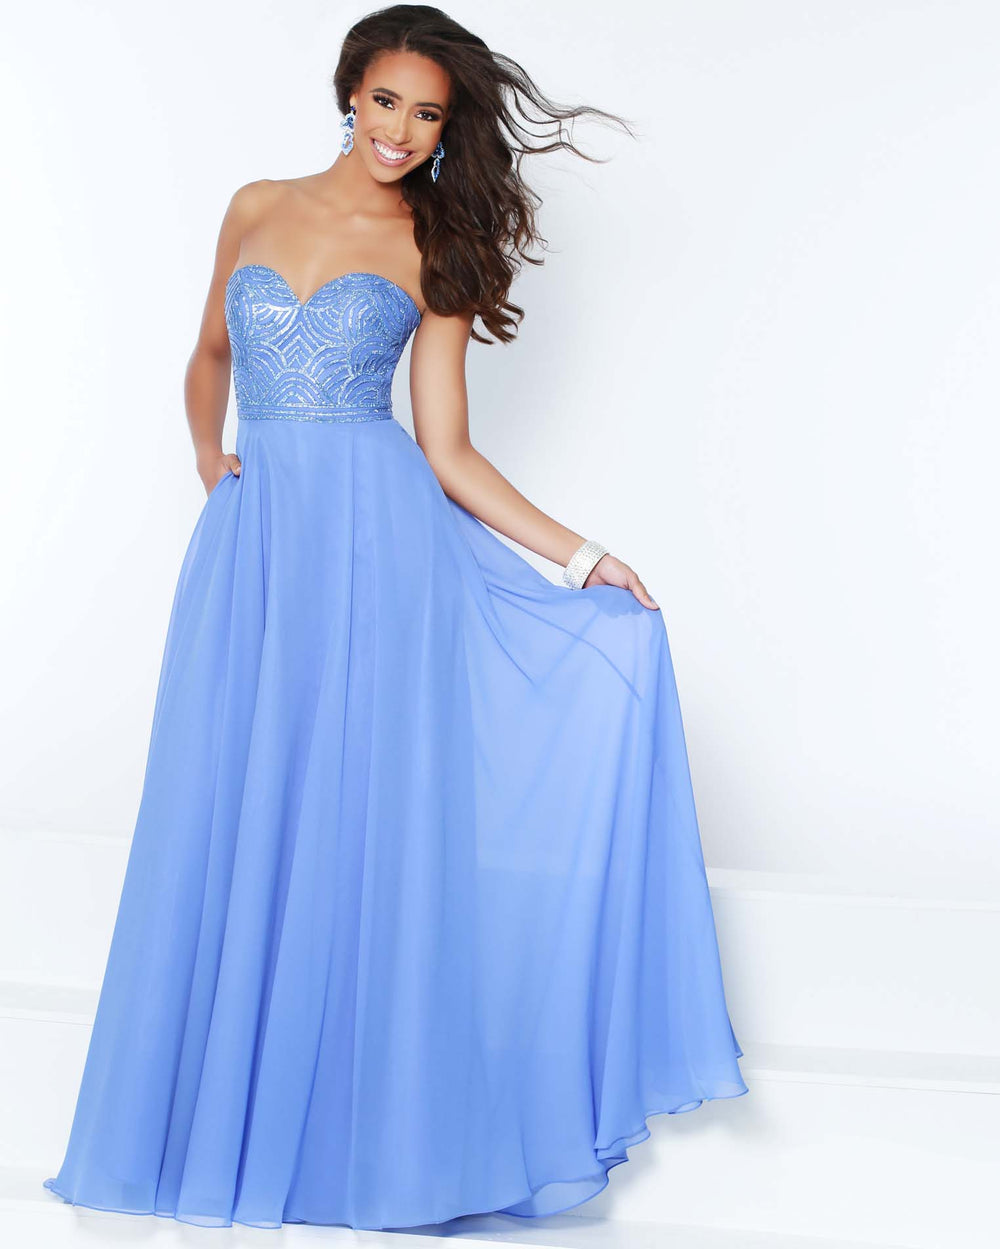 2Cute 91542 Strapless Long Chiffon Gown